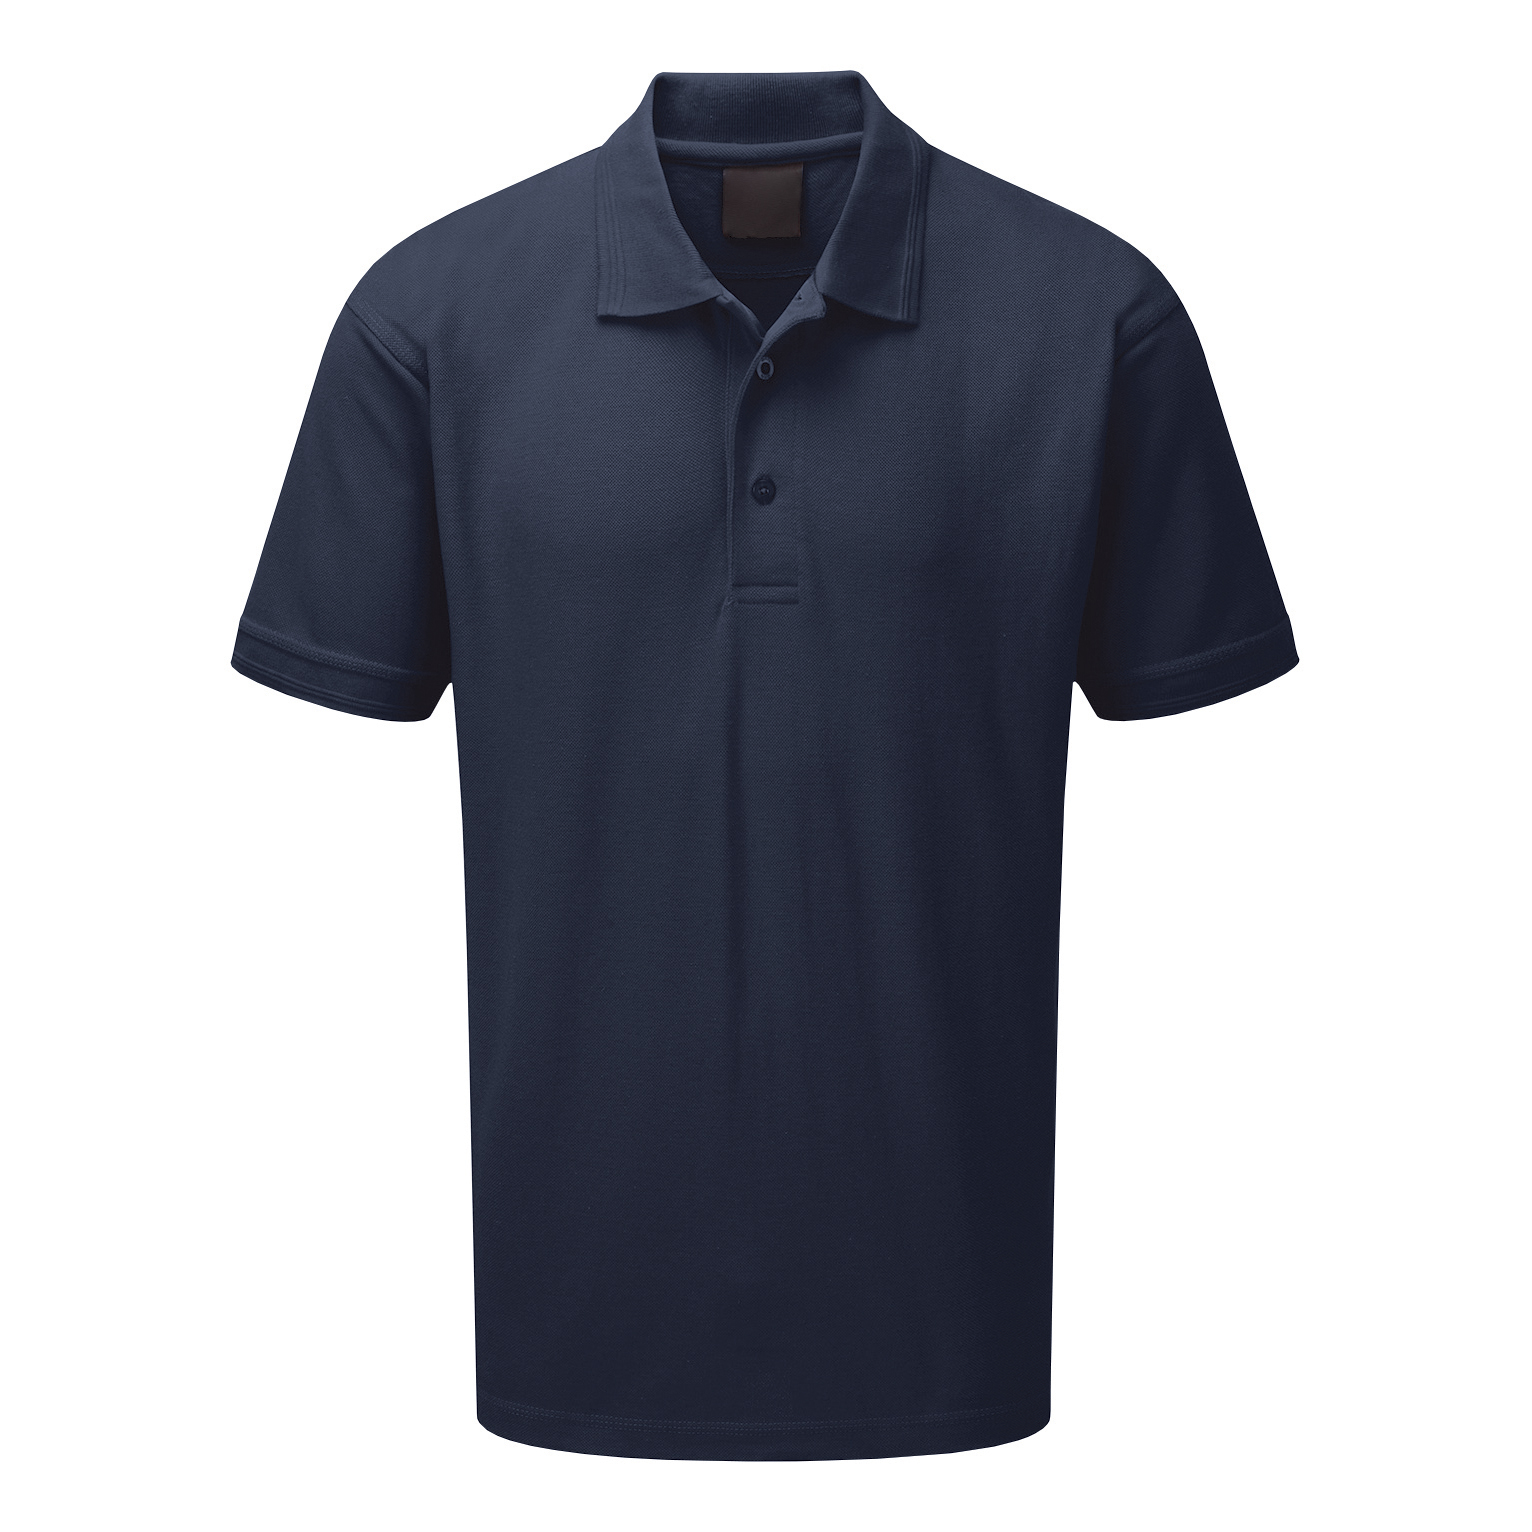 Supertouch Polo Shirt Classic Polycotton XXXLarge Navy Ref 56CN6 *Approx 3 Day Leadtime*